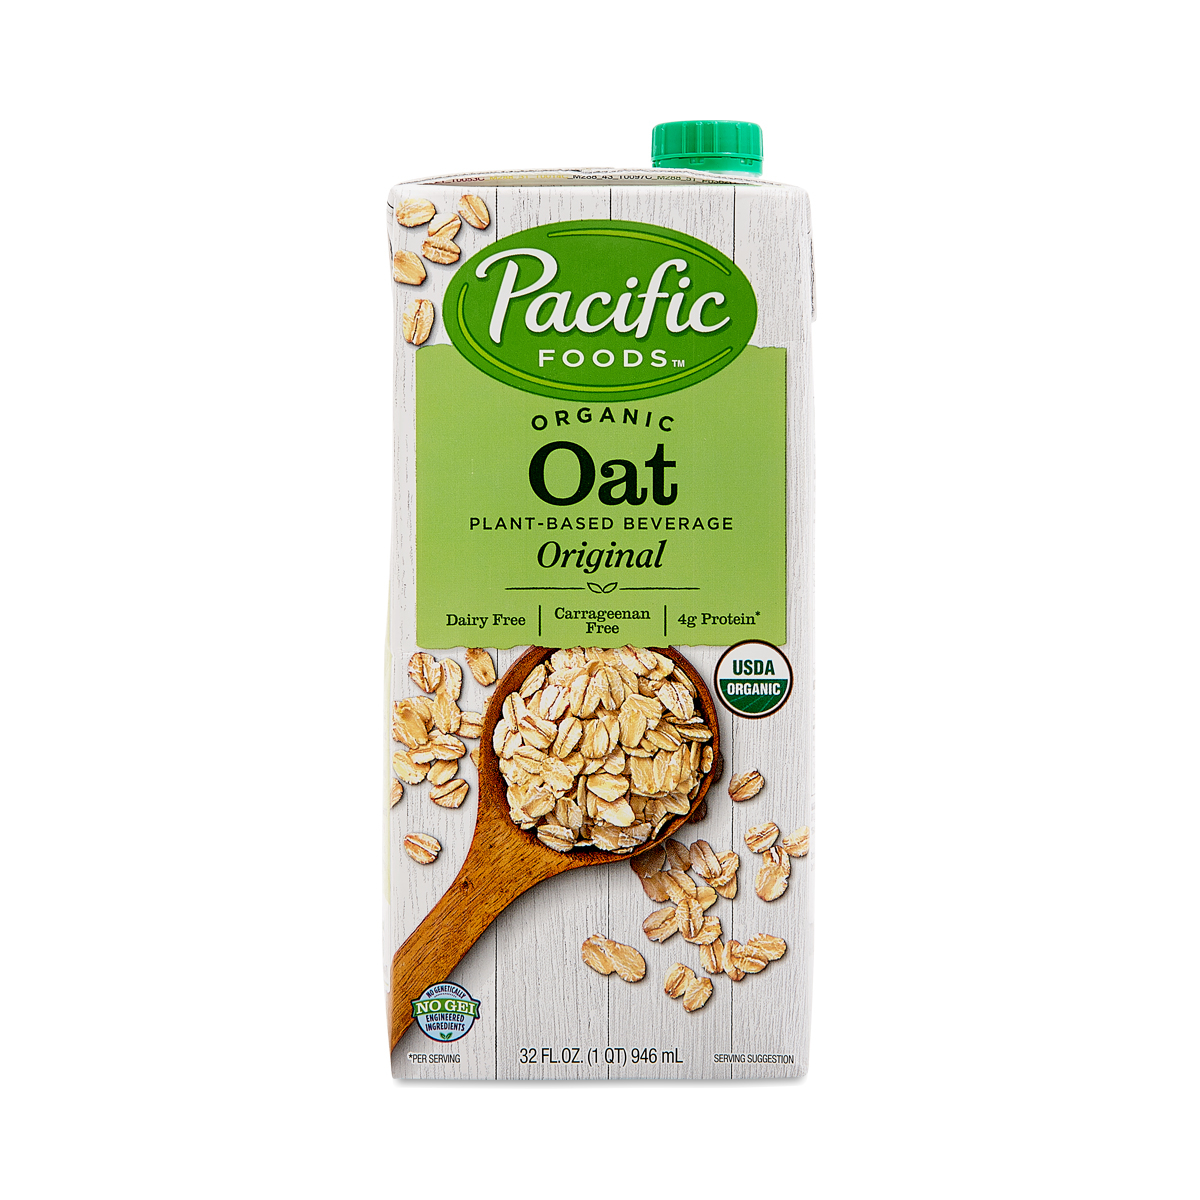 Pacific Foods Organic Oat Beverage, Original 32 oz carton